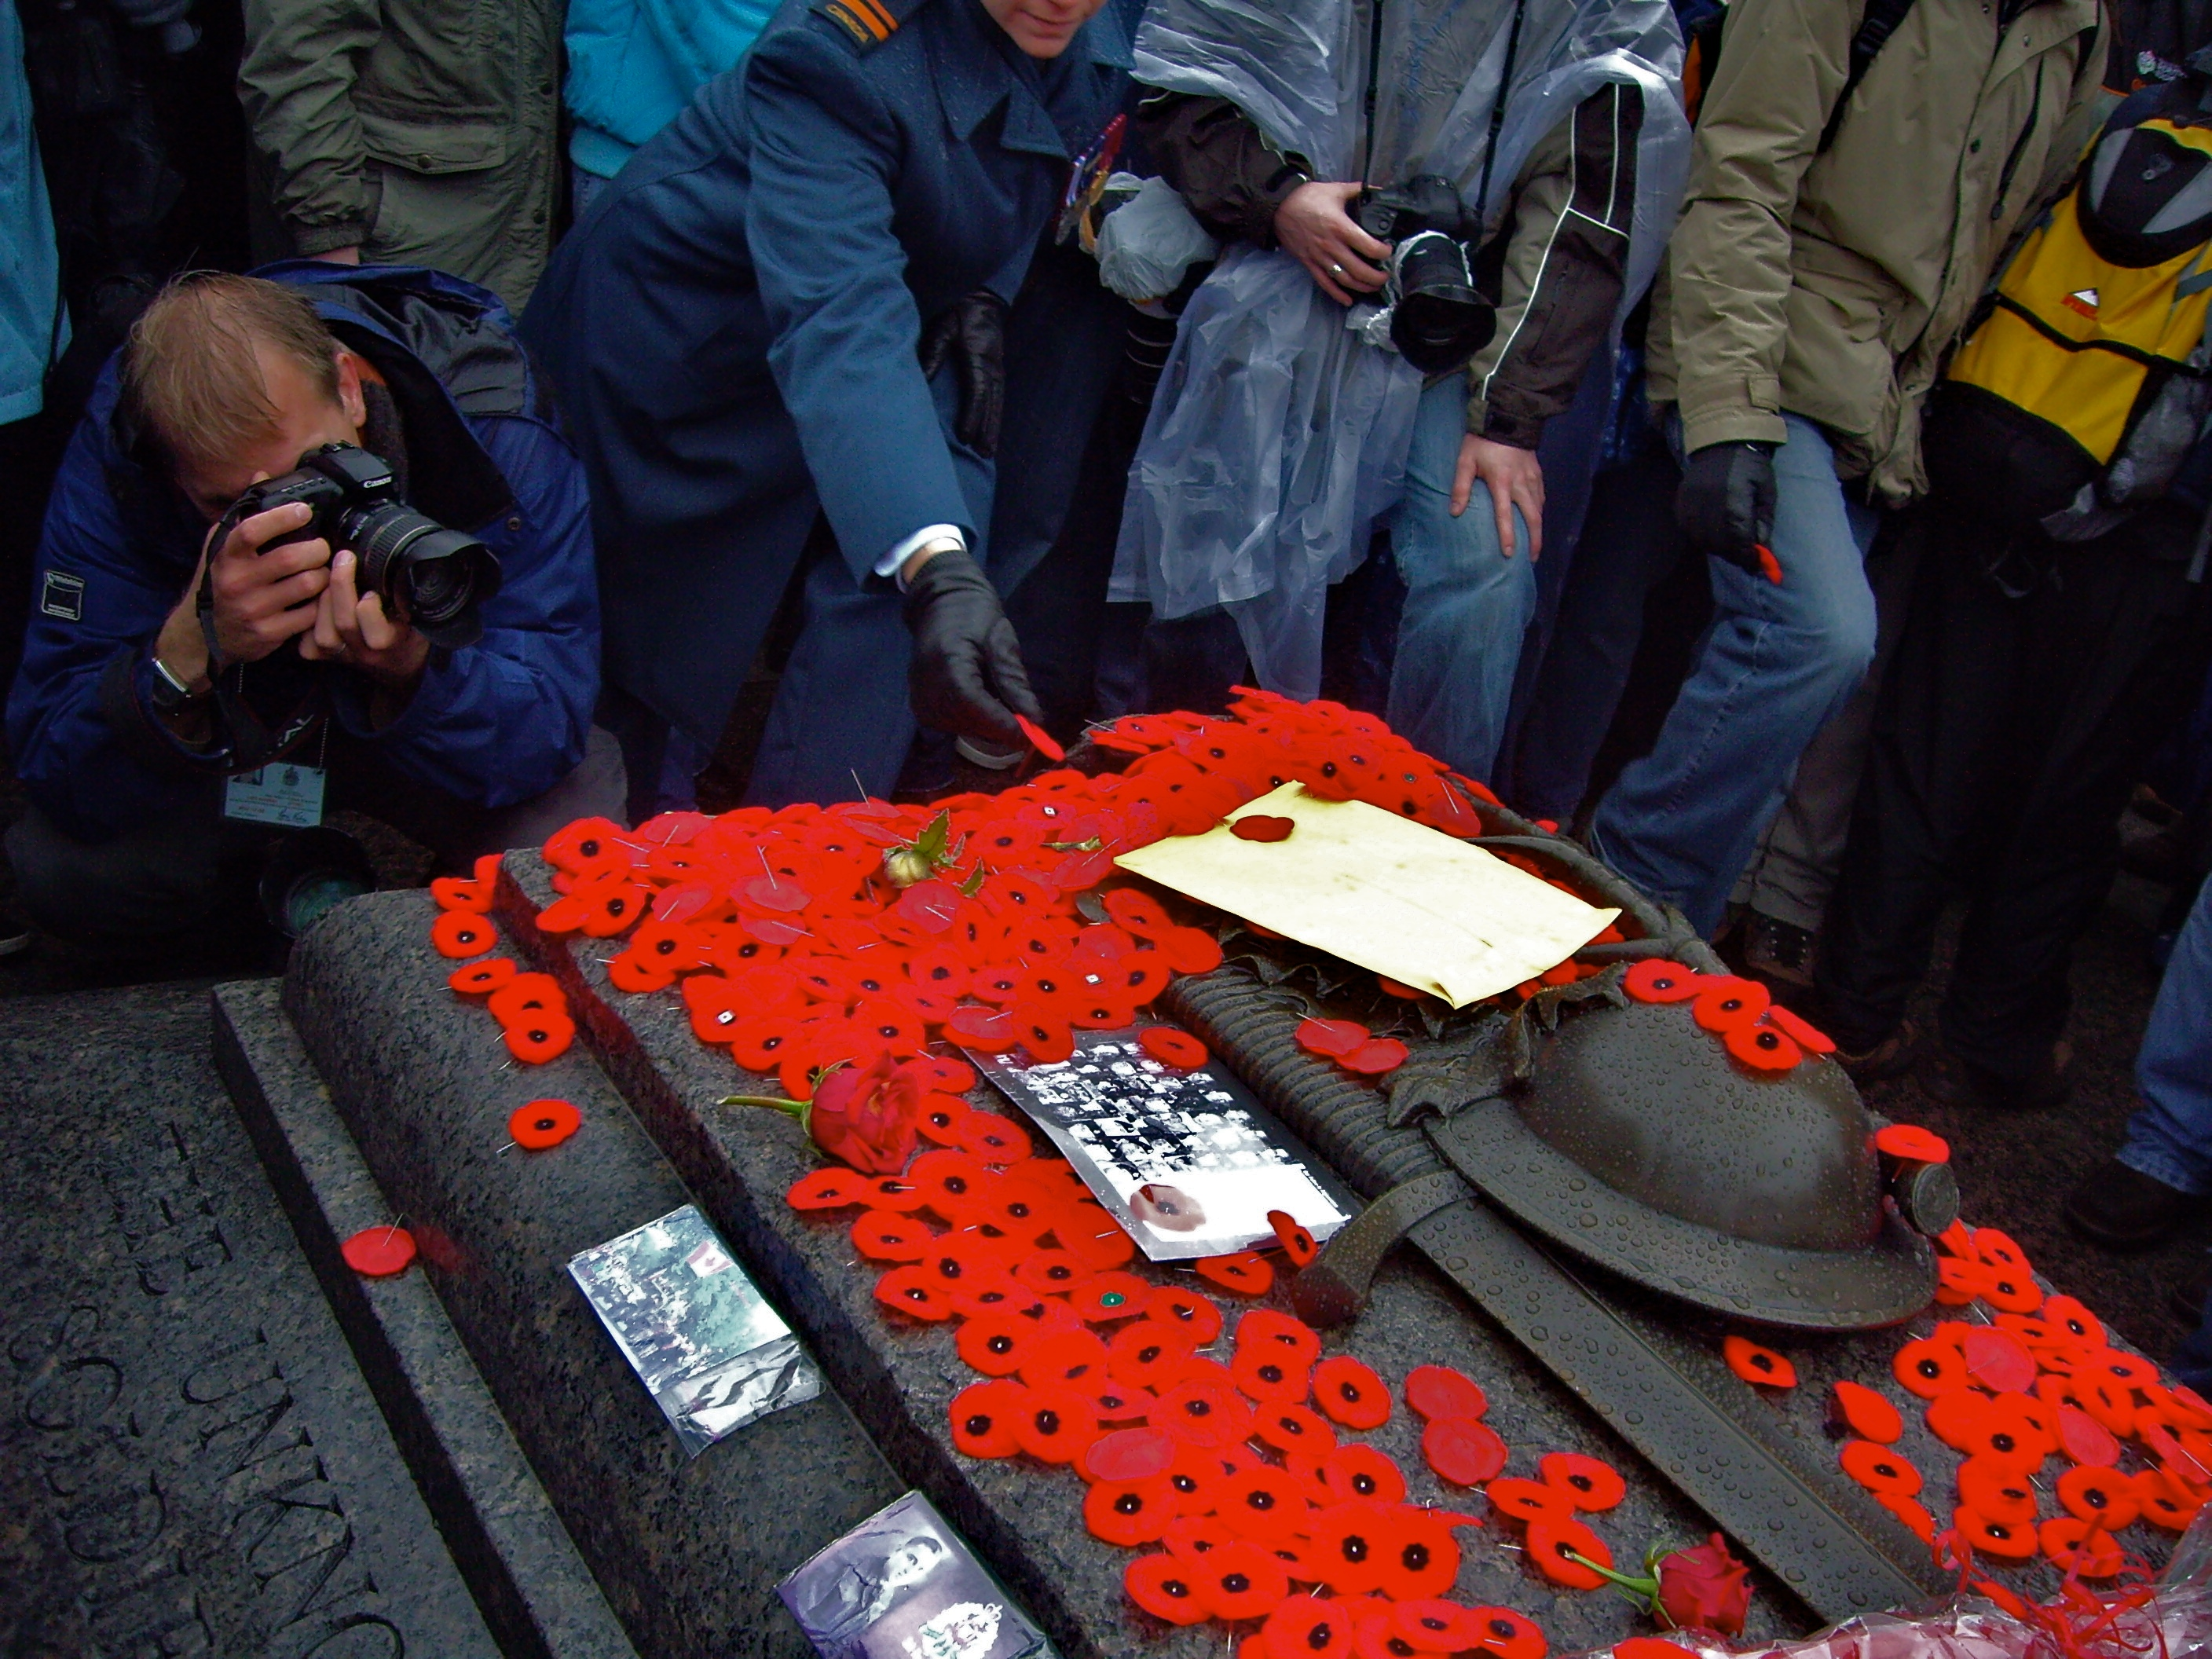 an analysis of the remembrance day of the sufferers of war in canada War poems and memorial poems for november 11, including work by tennyson and wilfred owen, chosen by charlotte runcie remembrance day poems:.